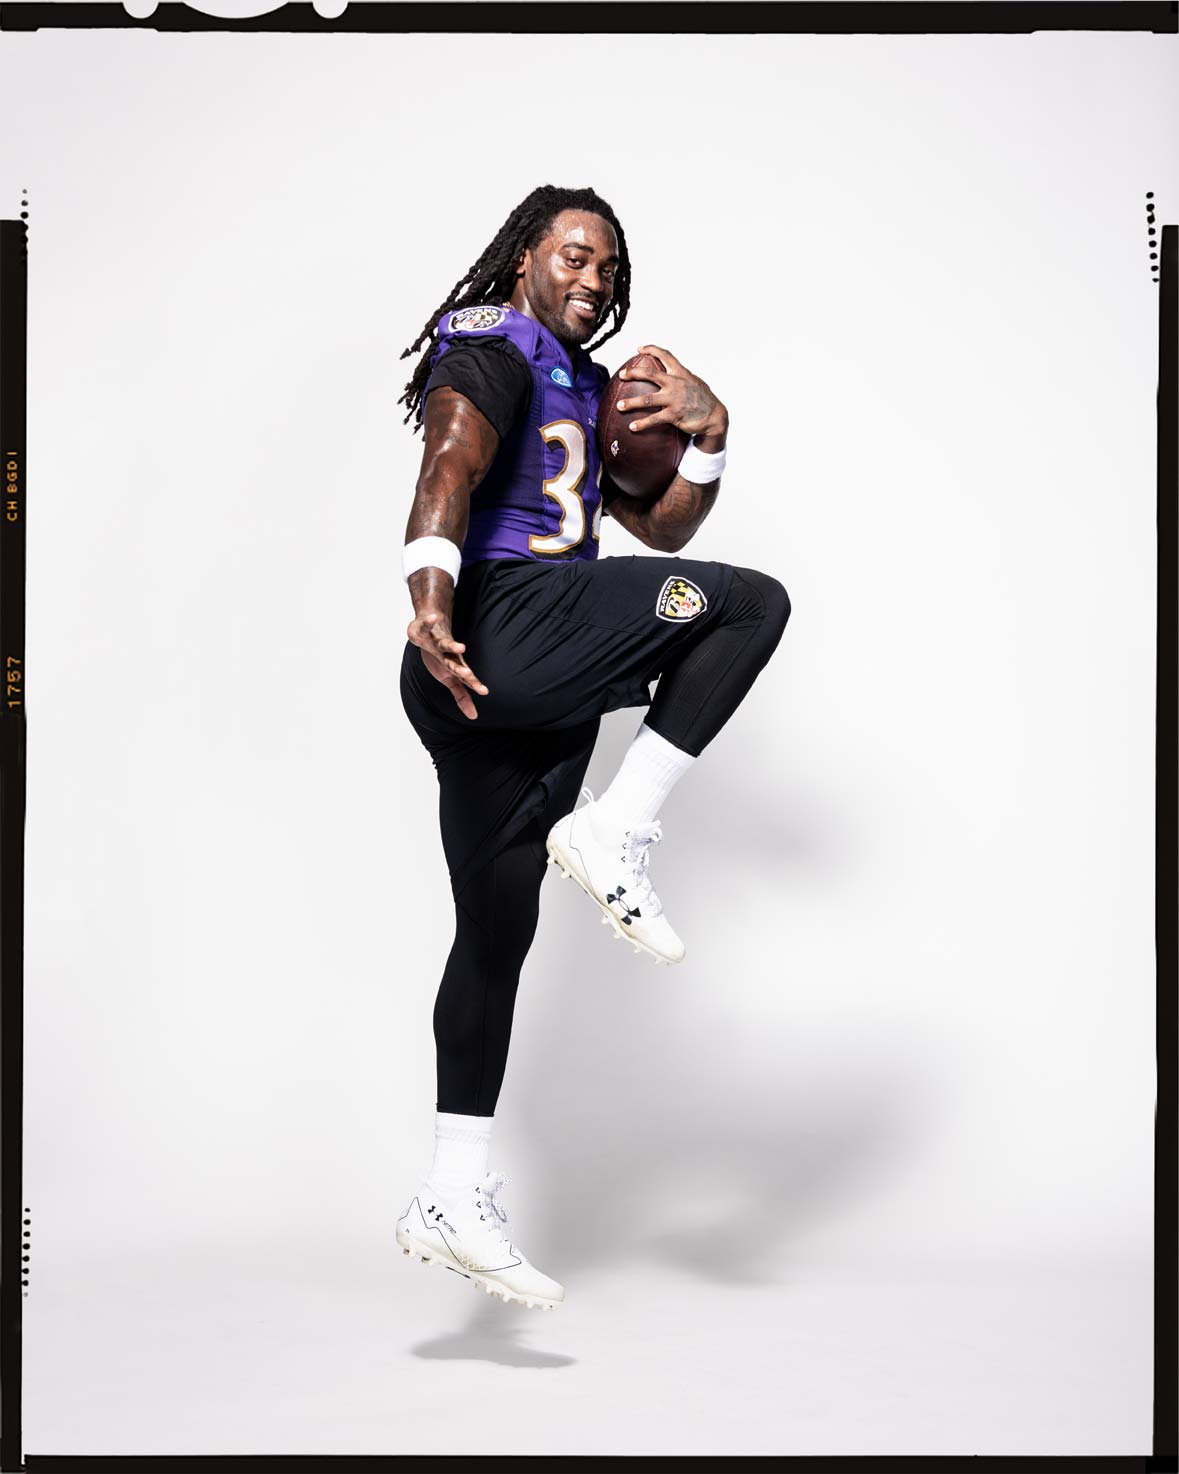 Baltimore Ravens running back Alex Collins striking a Heisman pose in uniform